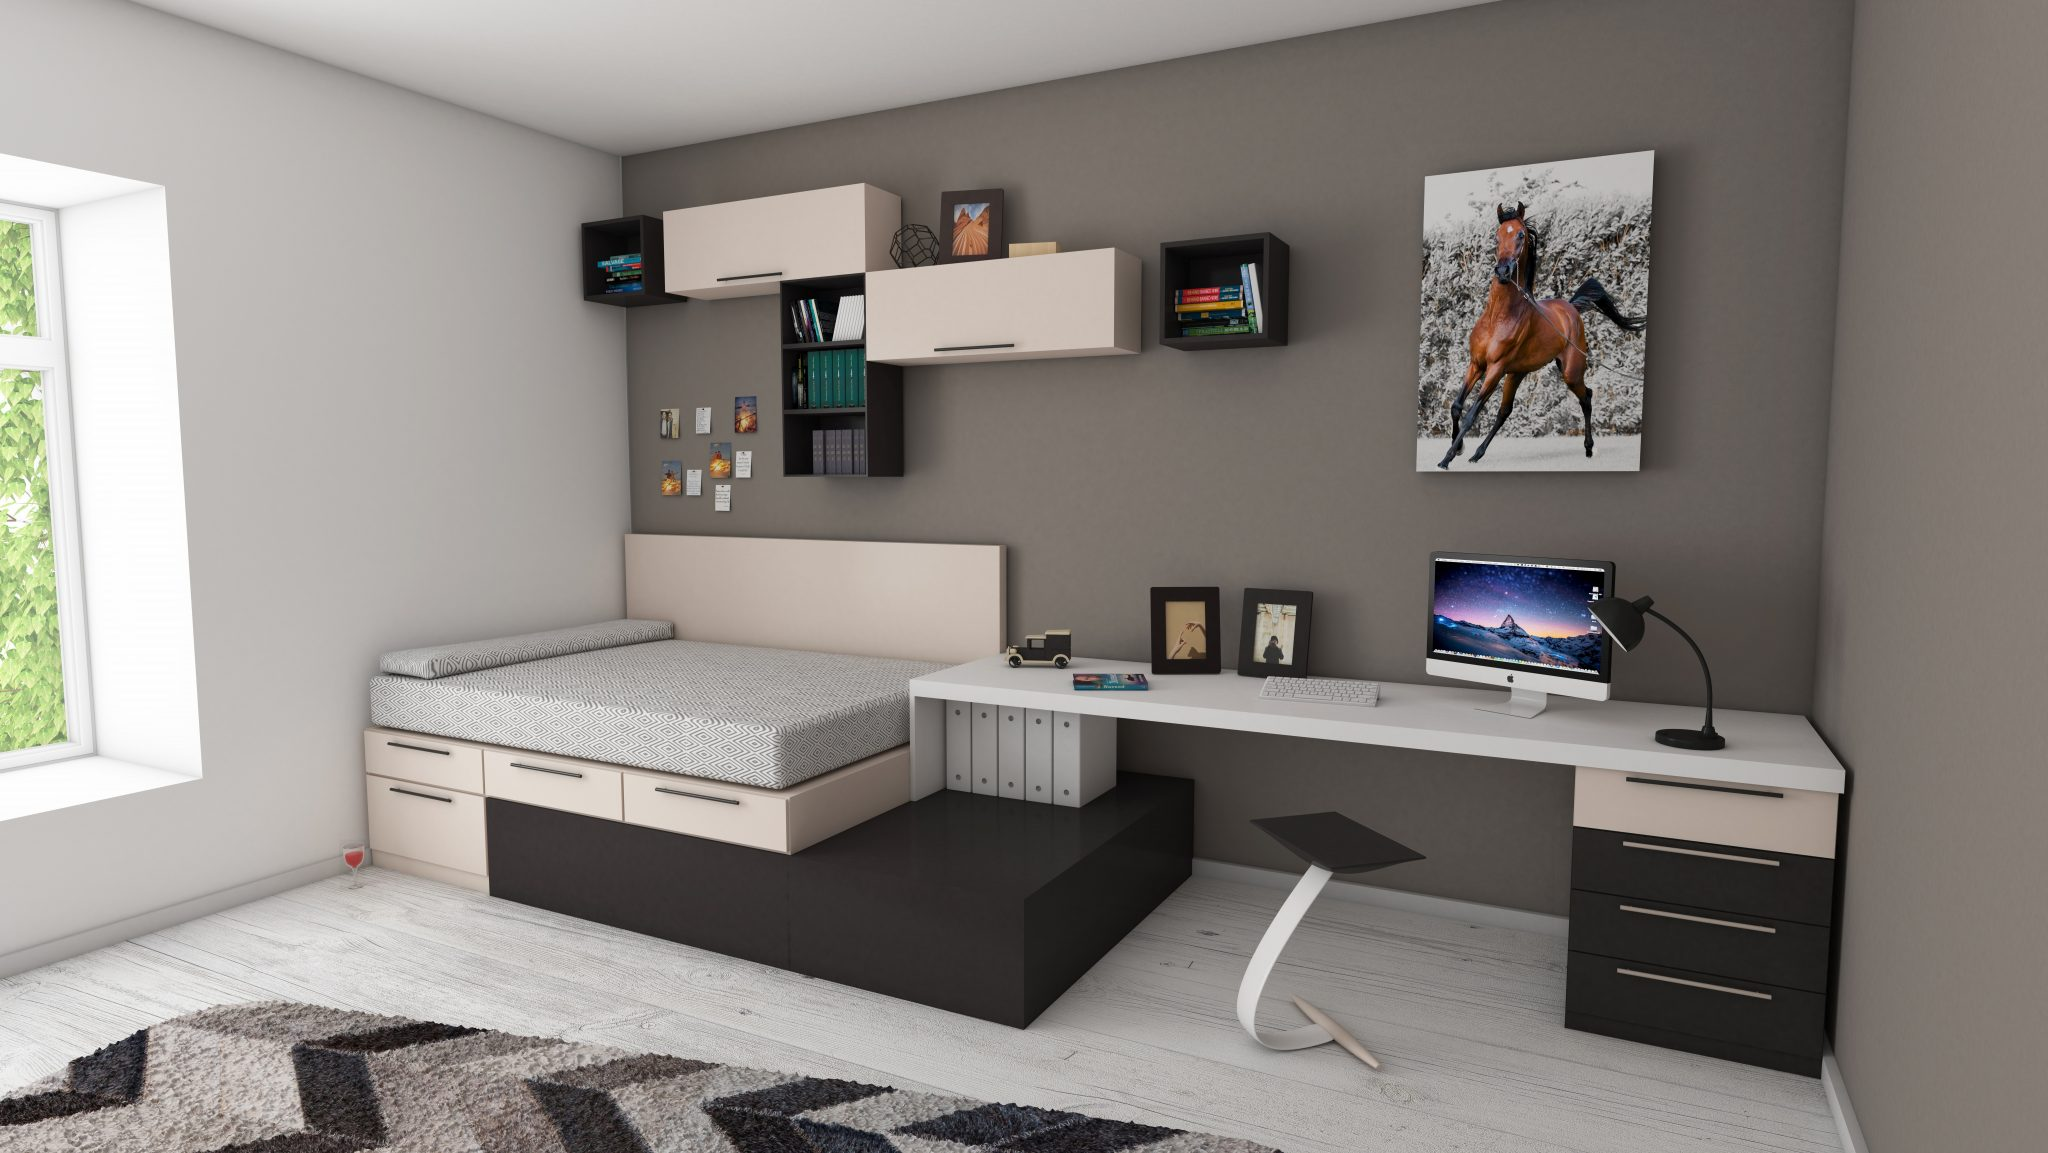 apartment-bed-bedroom